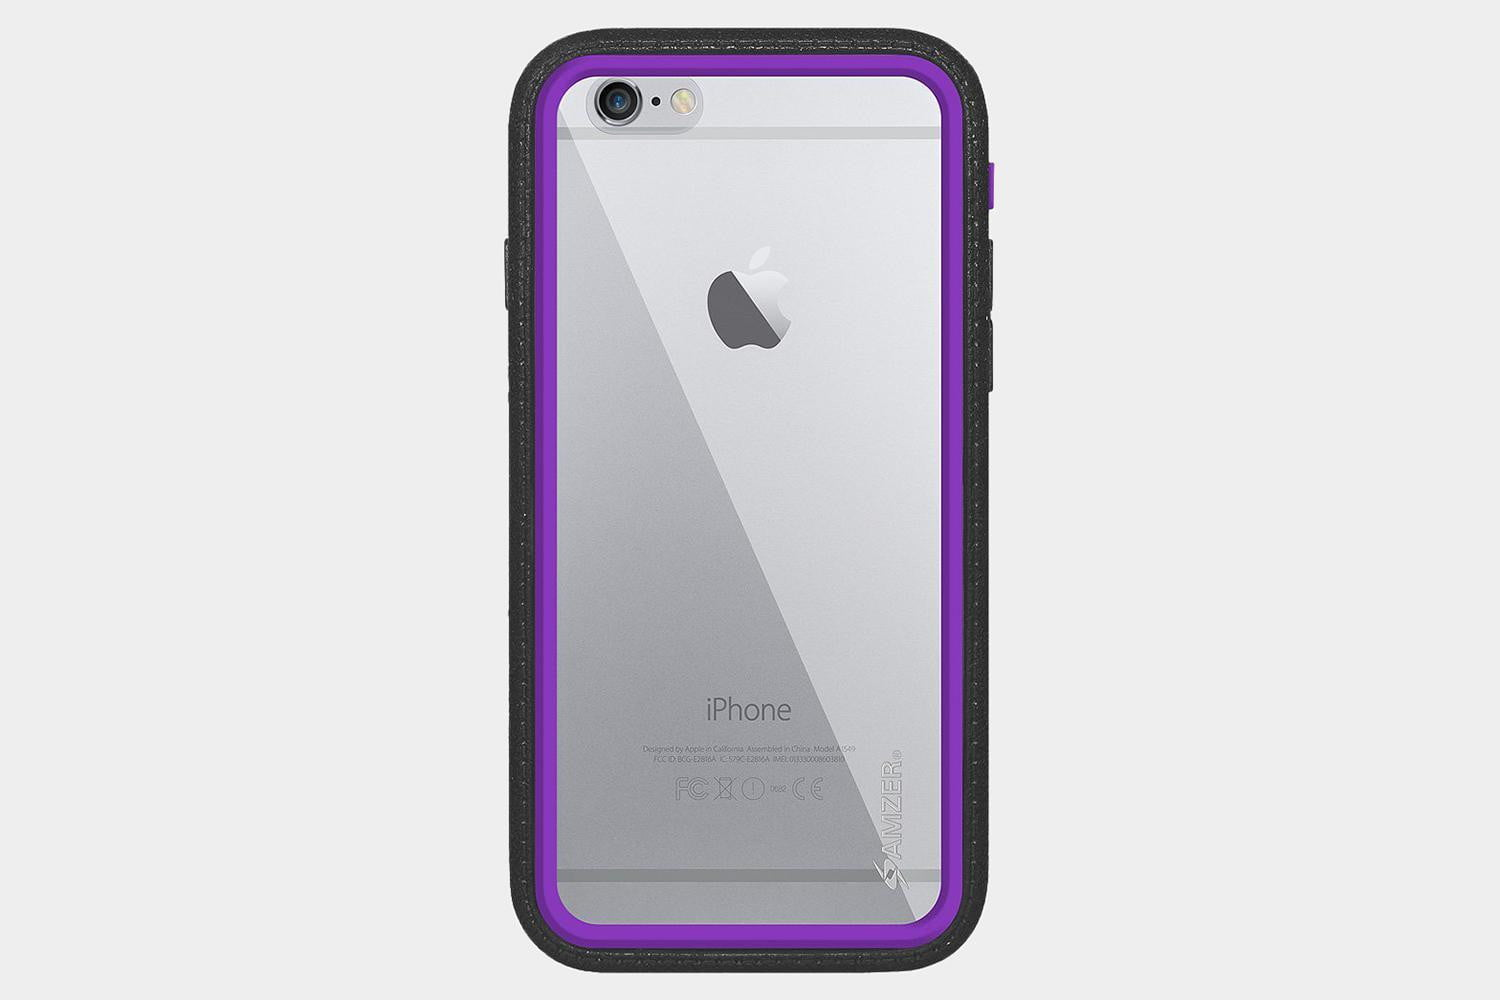 The Best Iphone 6 Cases And Covers Digital Trends Apple 5 32gb White Free Tempered Glass Refurbish Crusta Case From Amzer Certainly Looks Different It Offers Rugged Protection At A Reasonable Price Youll Find Screen Protector